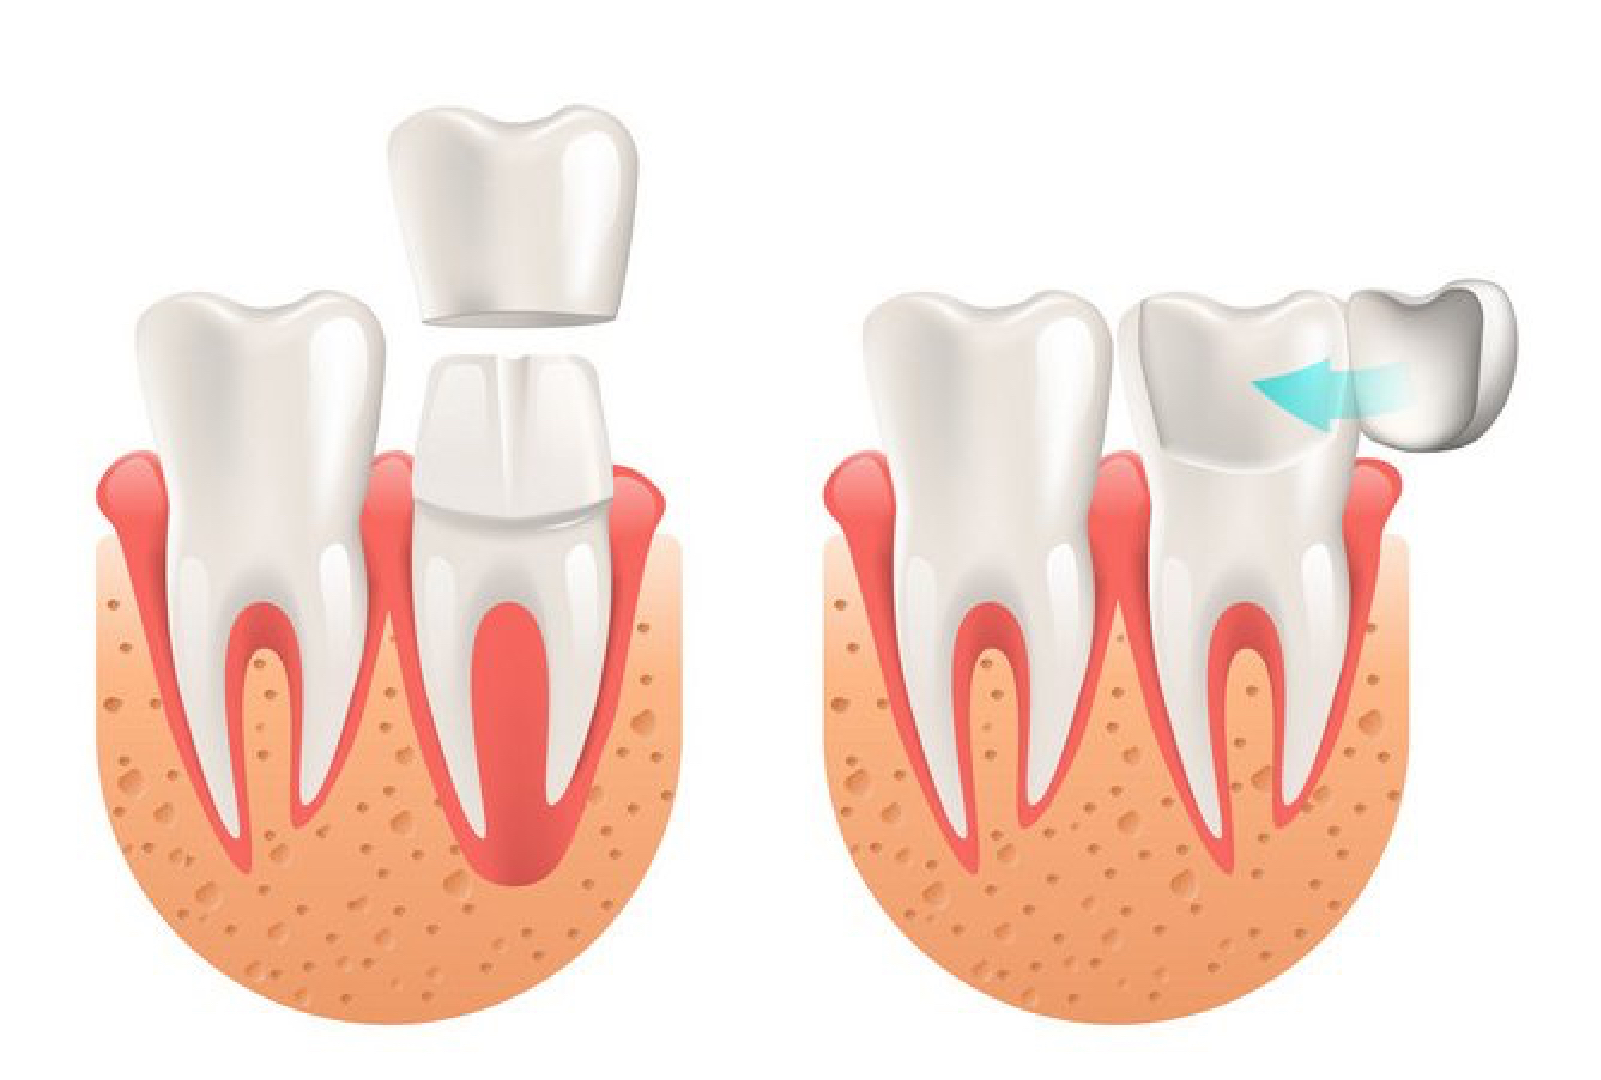 Treatment choices: Dental Crowns Vs Porcelain Veneers